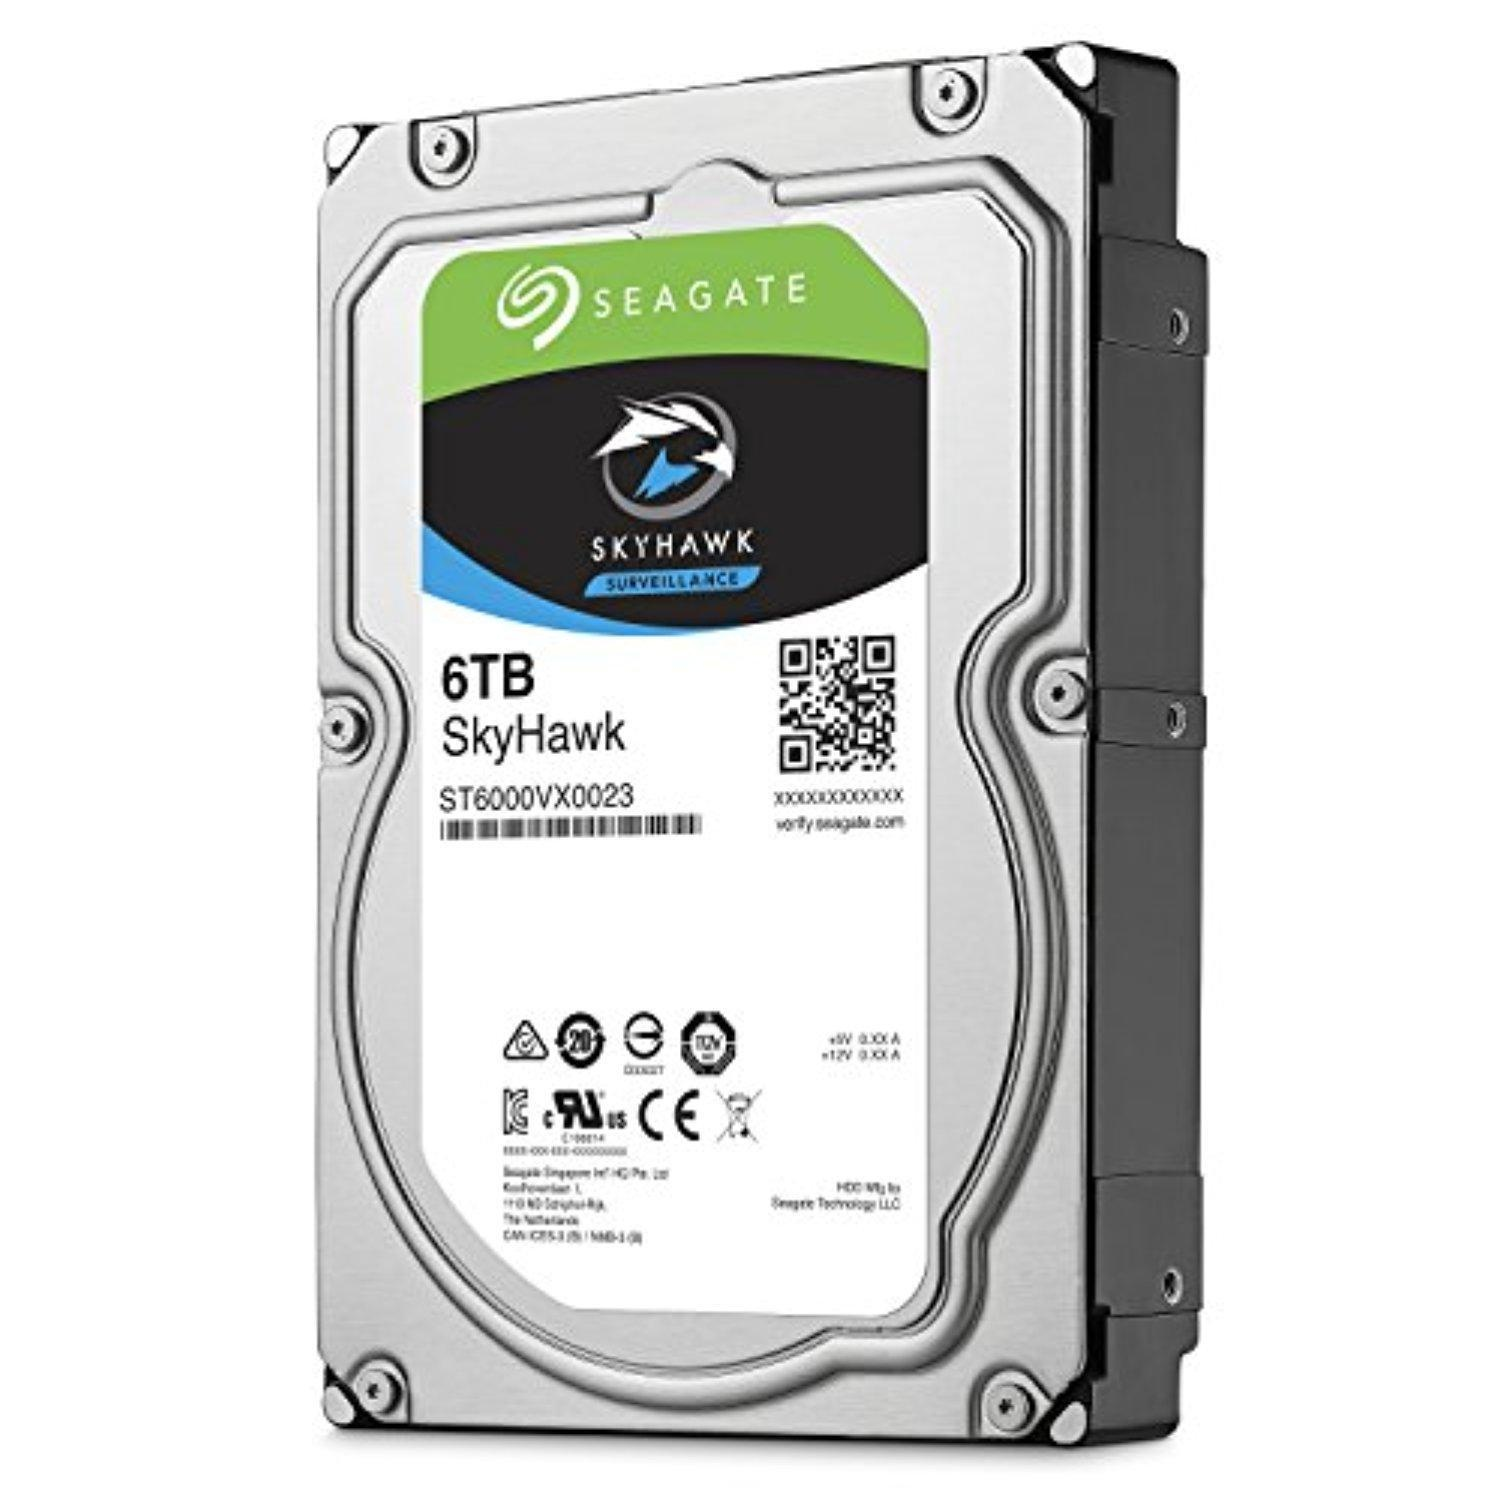 Ổ Cứng HDD Seagate 6TB SkyHawk Surveillance 7200PRM Sata3 256MB Cache - End Of Life ( EOL)